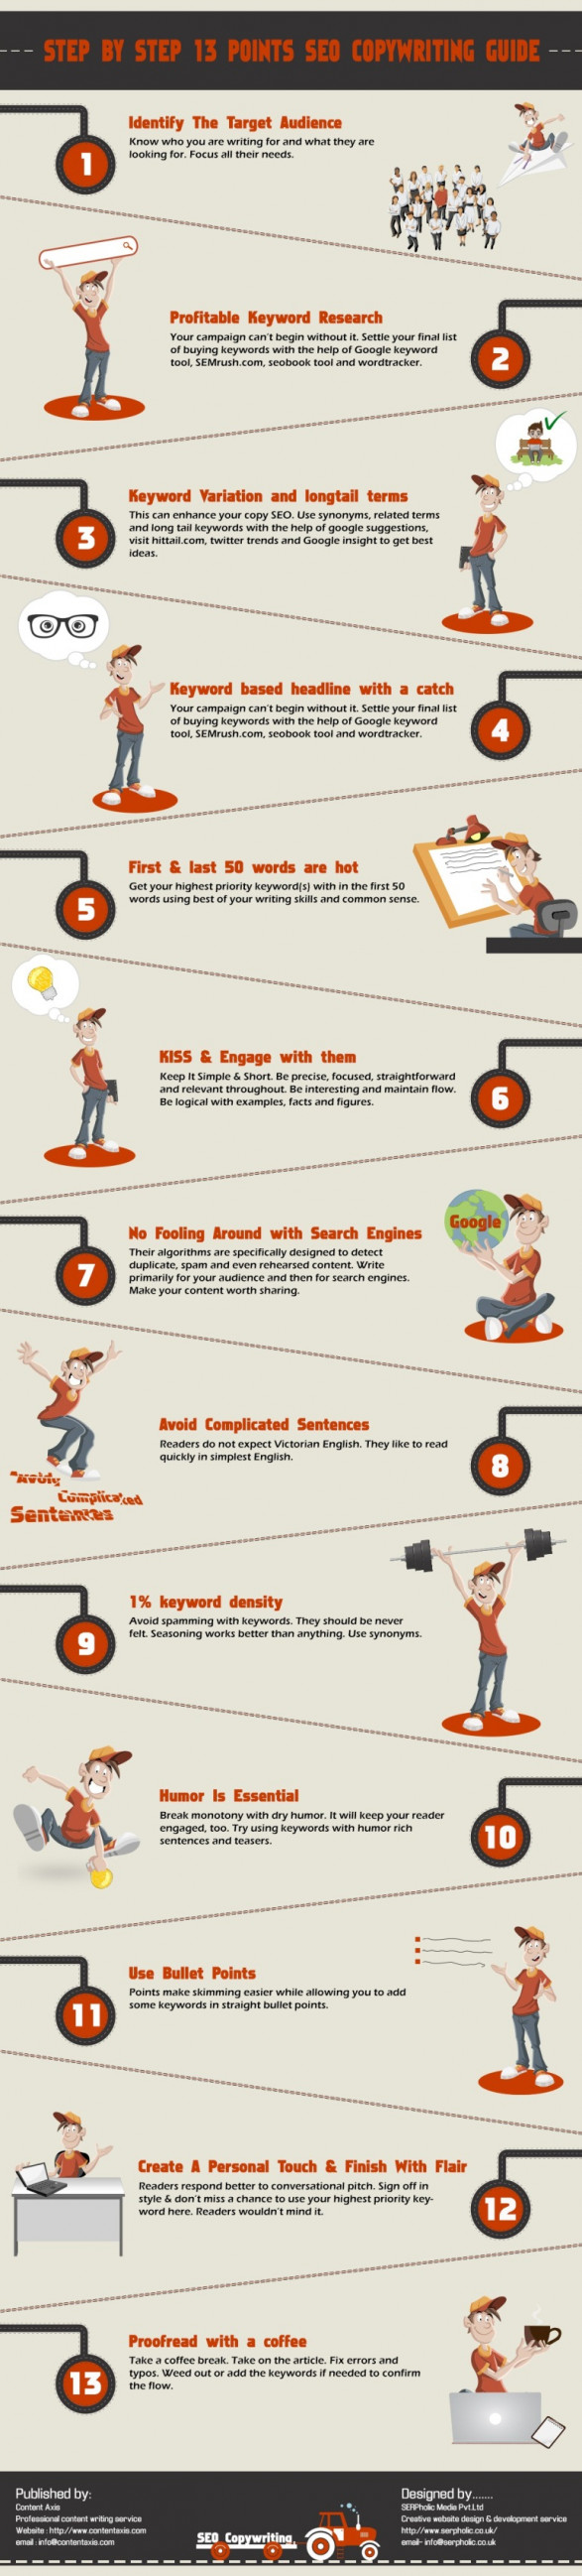 Infographic: Step by Step 13 Points SEO Copywriting Guide